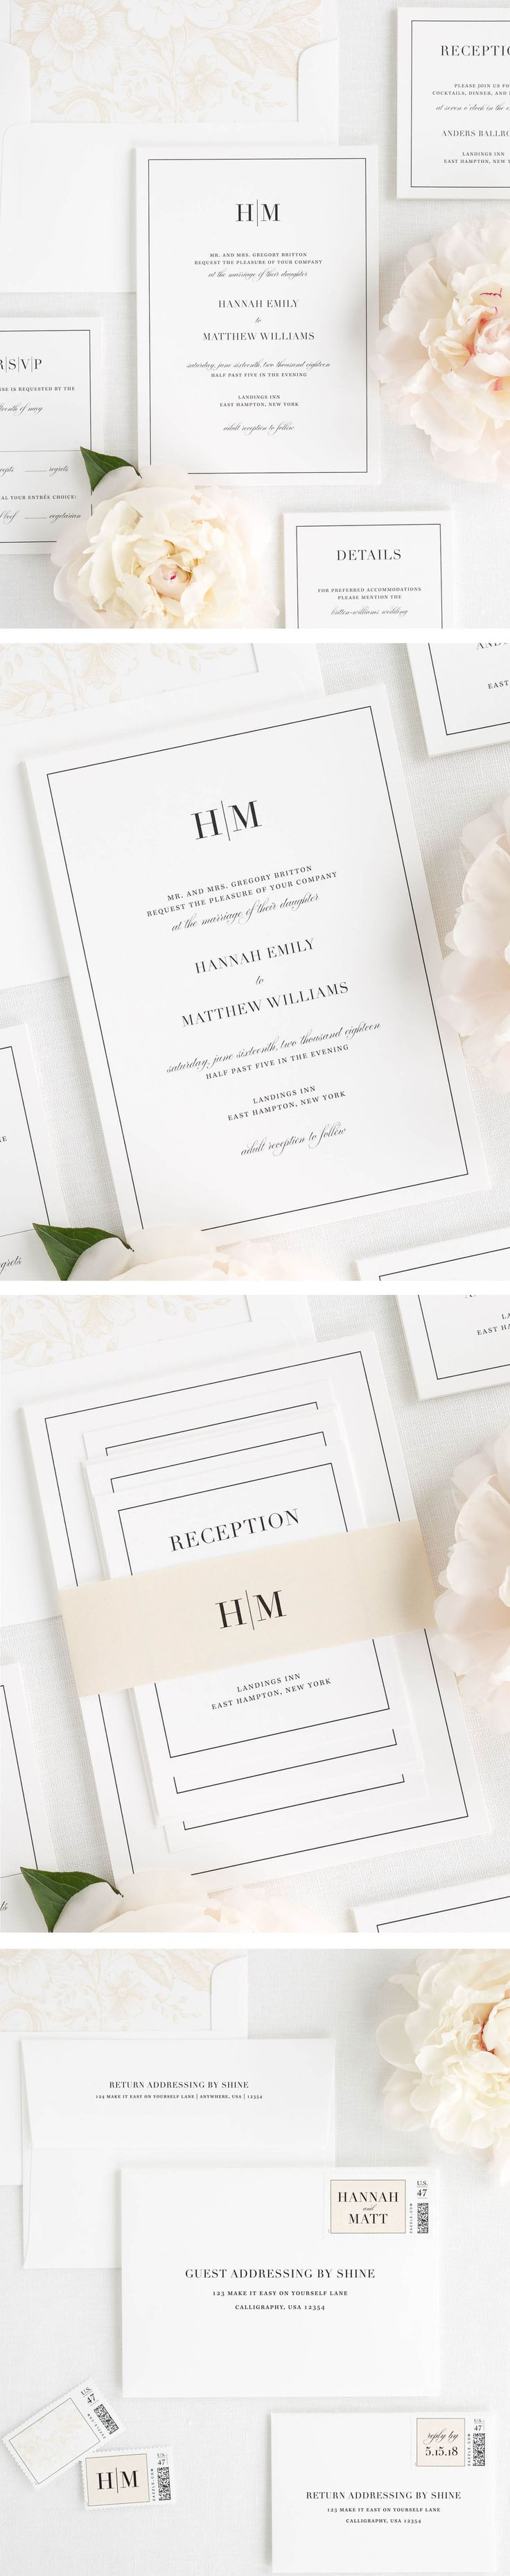 Classic, timeless, and customizable wedding invitations. Request a free sample today.